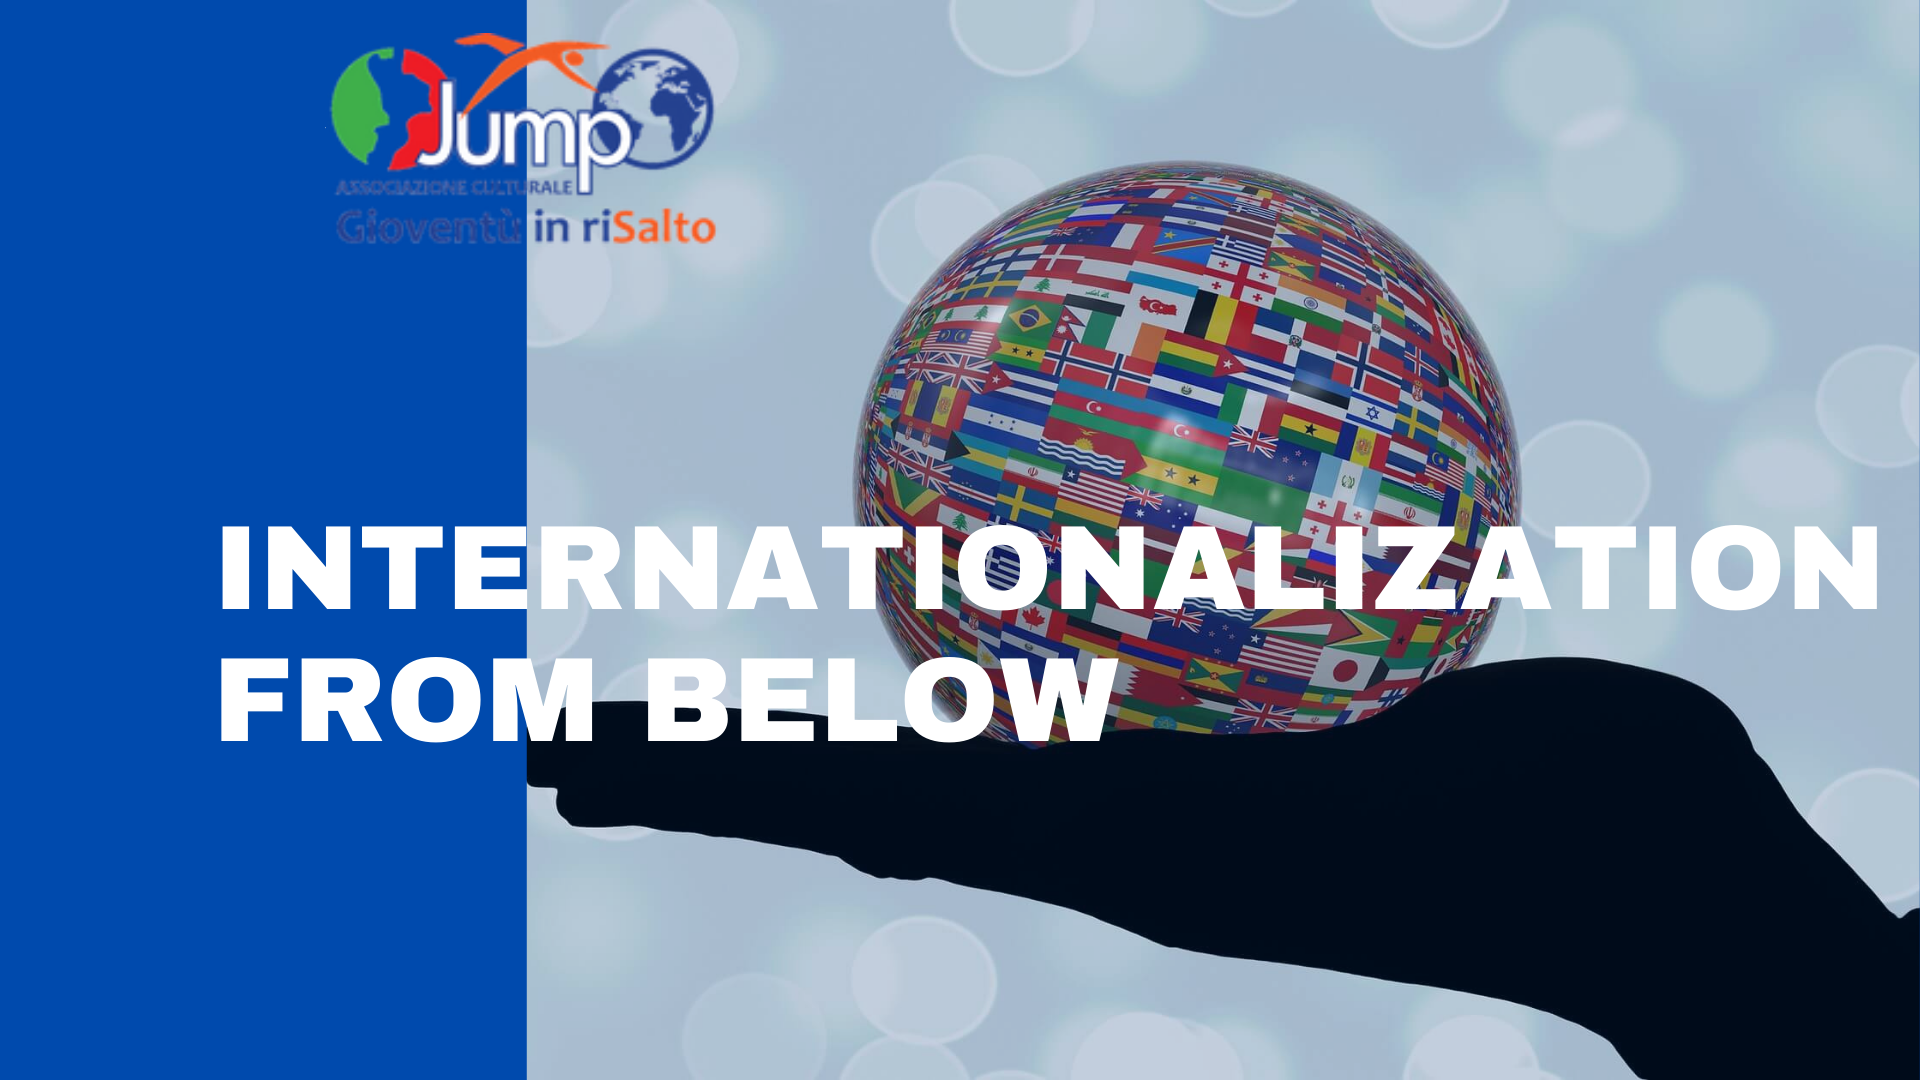 Internationalization from below